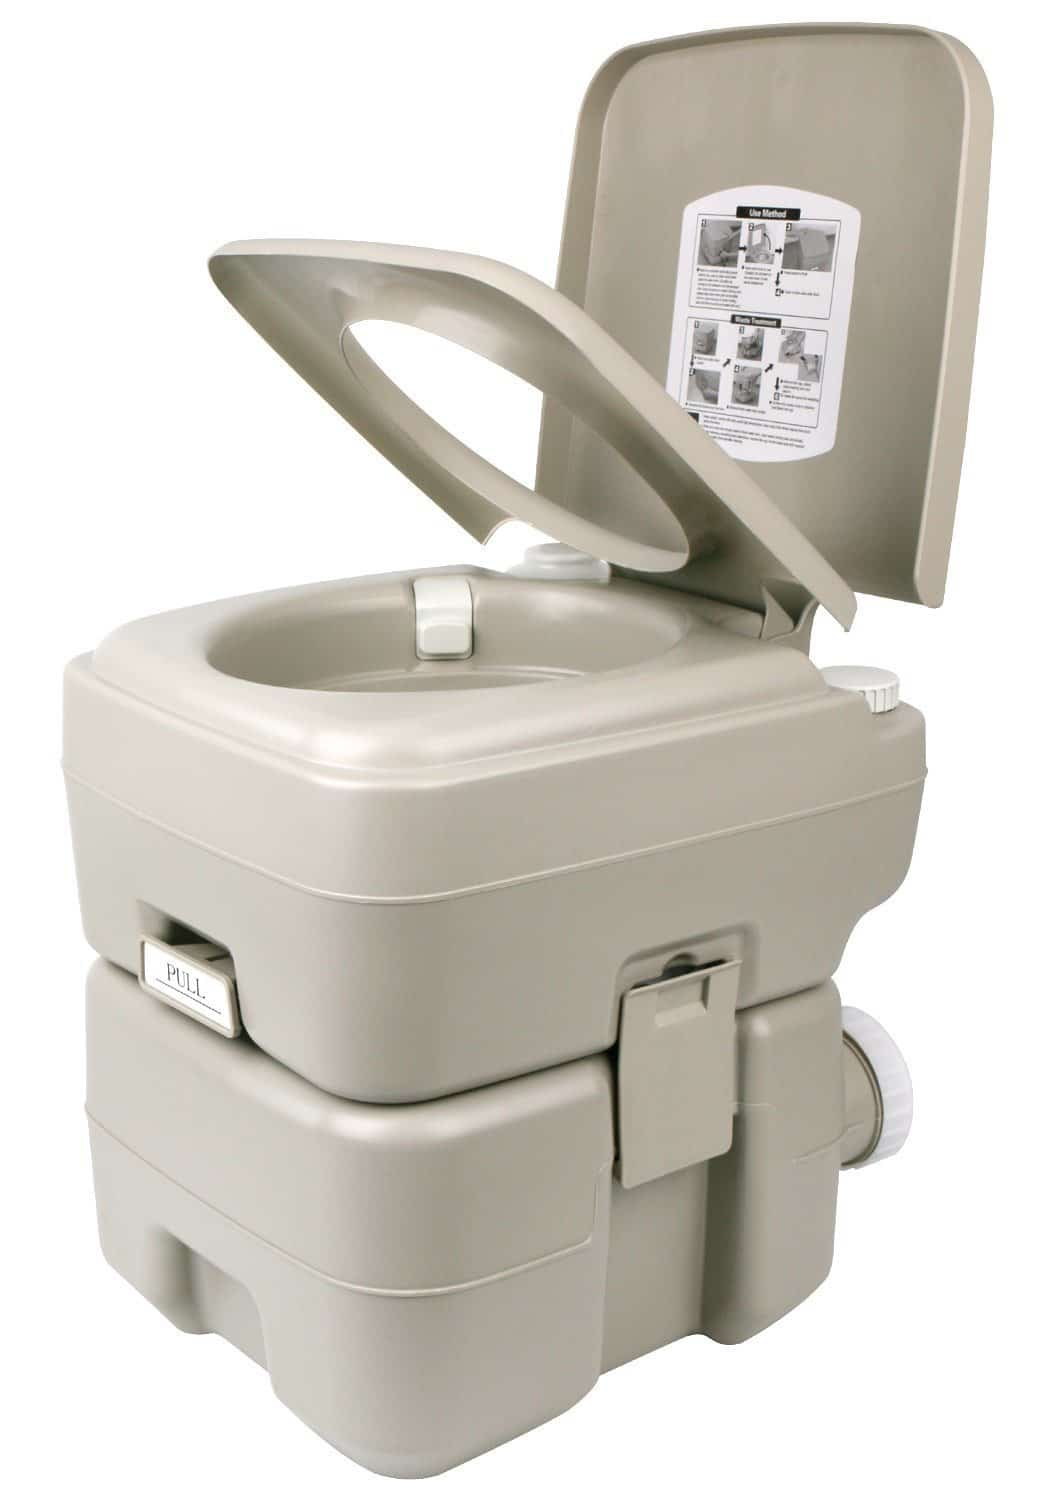 7 Best RV Toilet Reviews 2019 | Top Picks and Guide